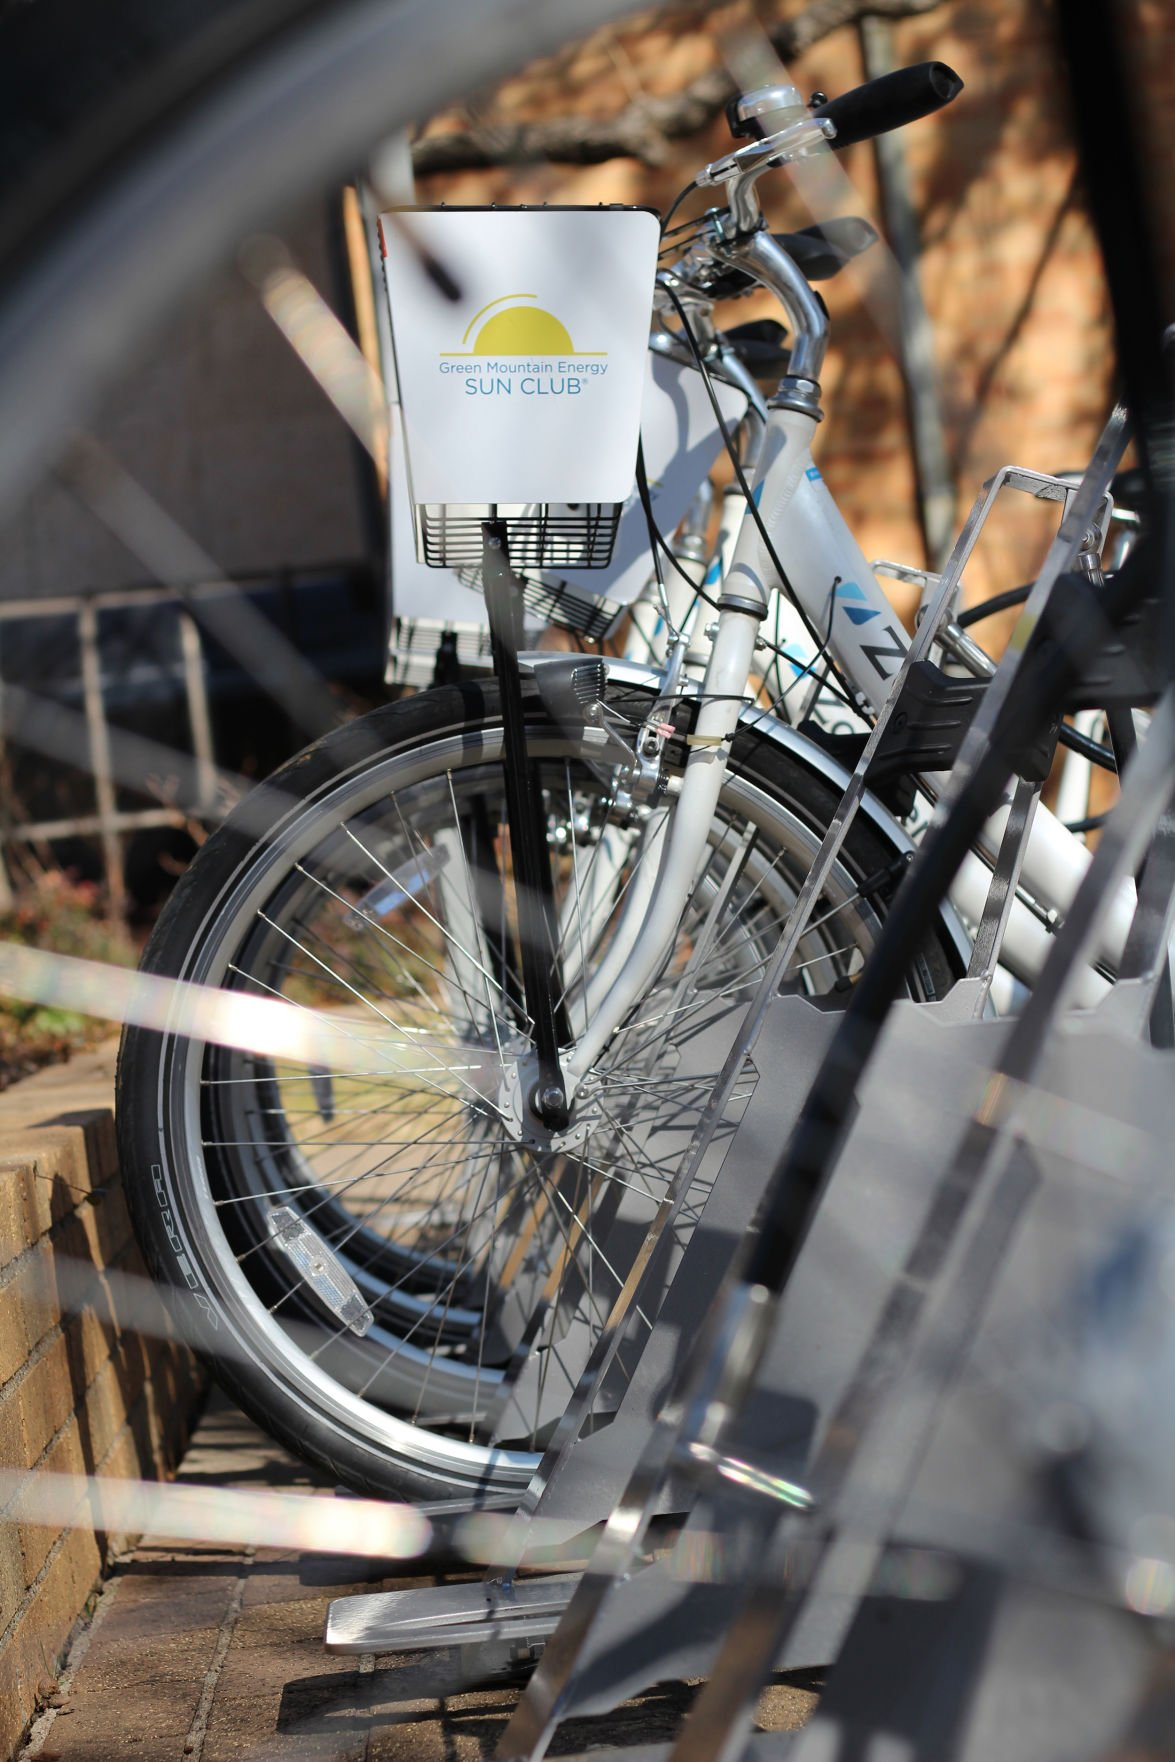 Bike-shares may pose more risk than benefits